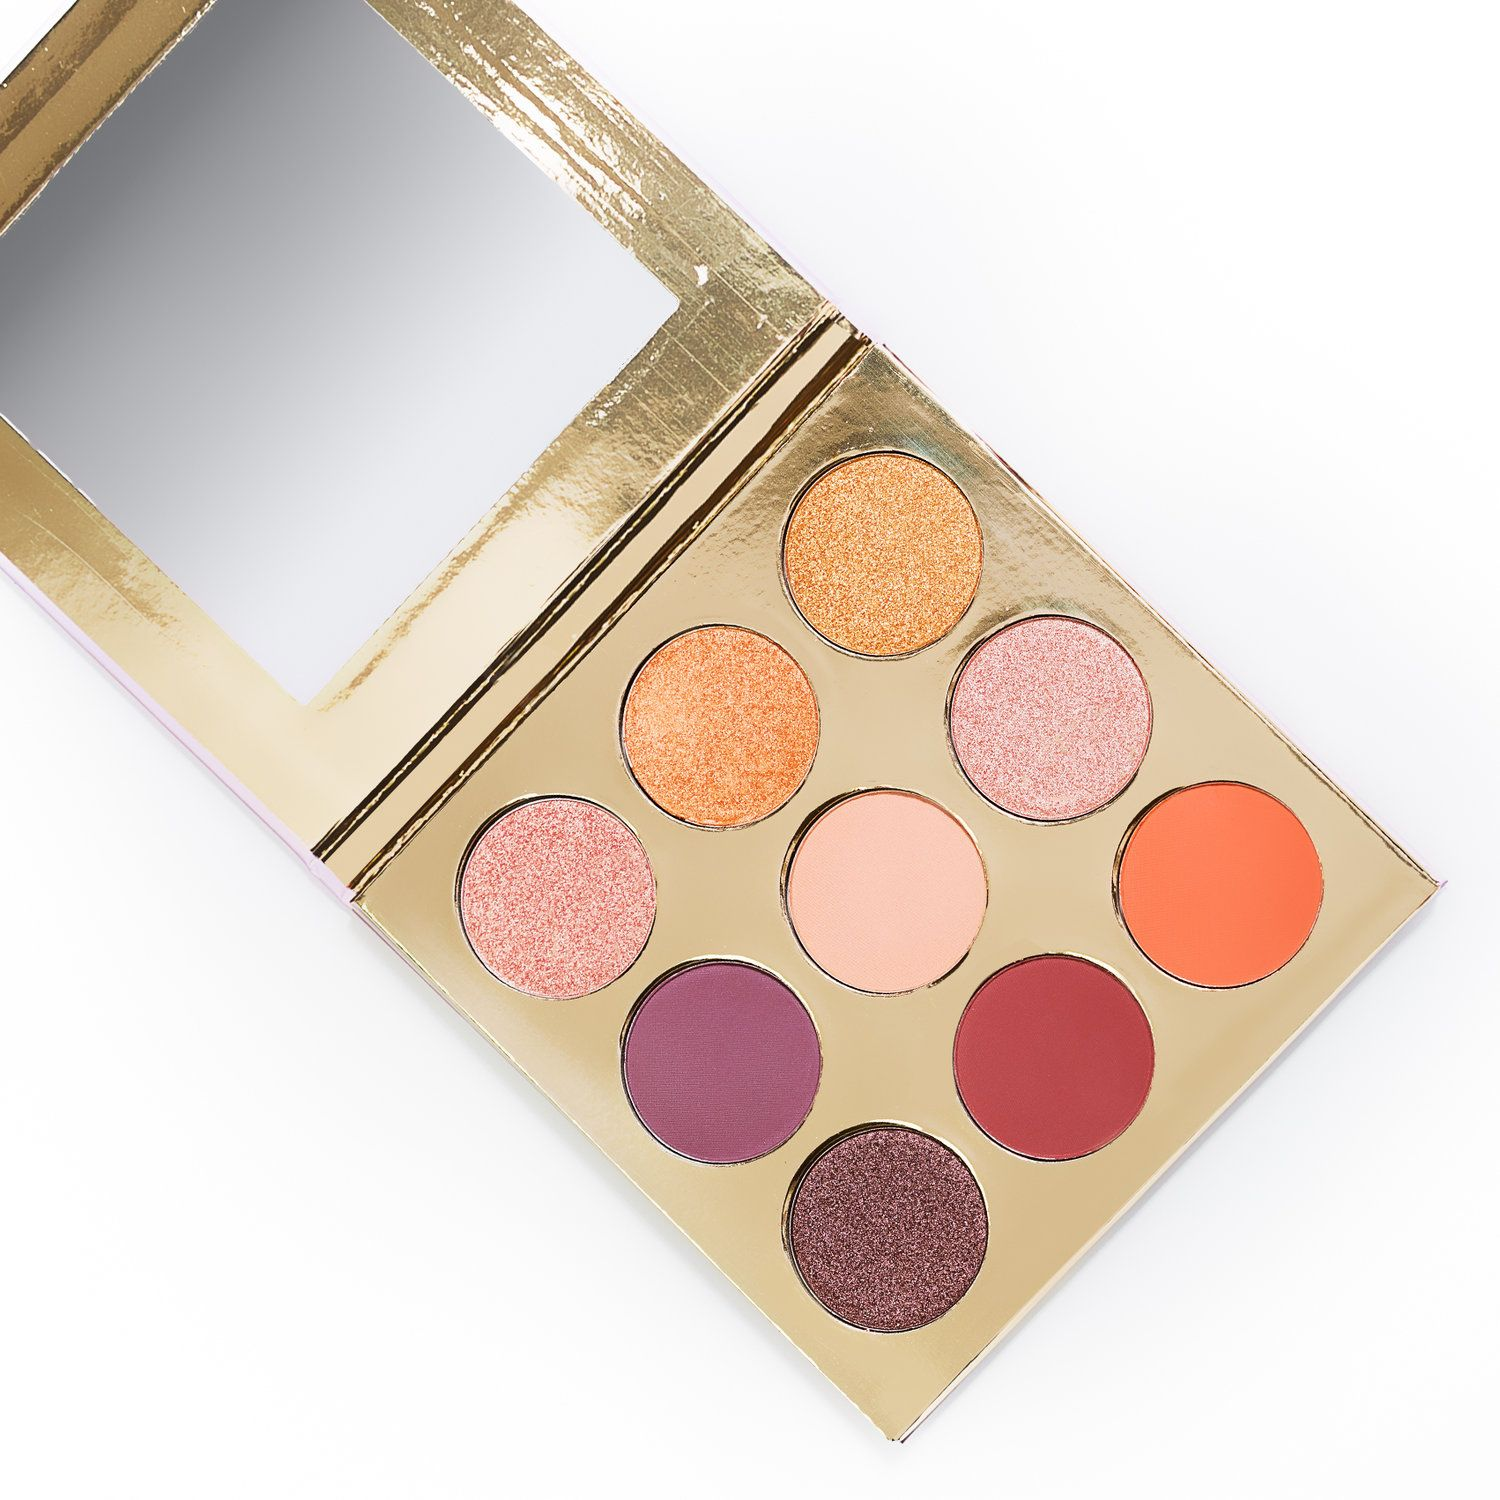 GlōGirl Cosmetics Snatched Eyeshadow Palette Eyeshadow